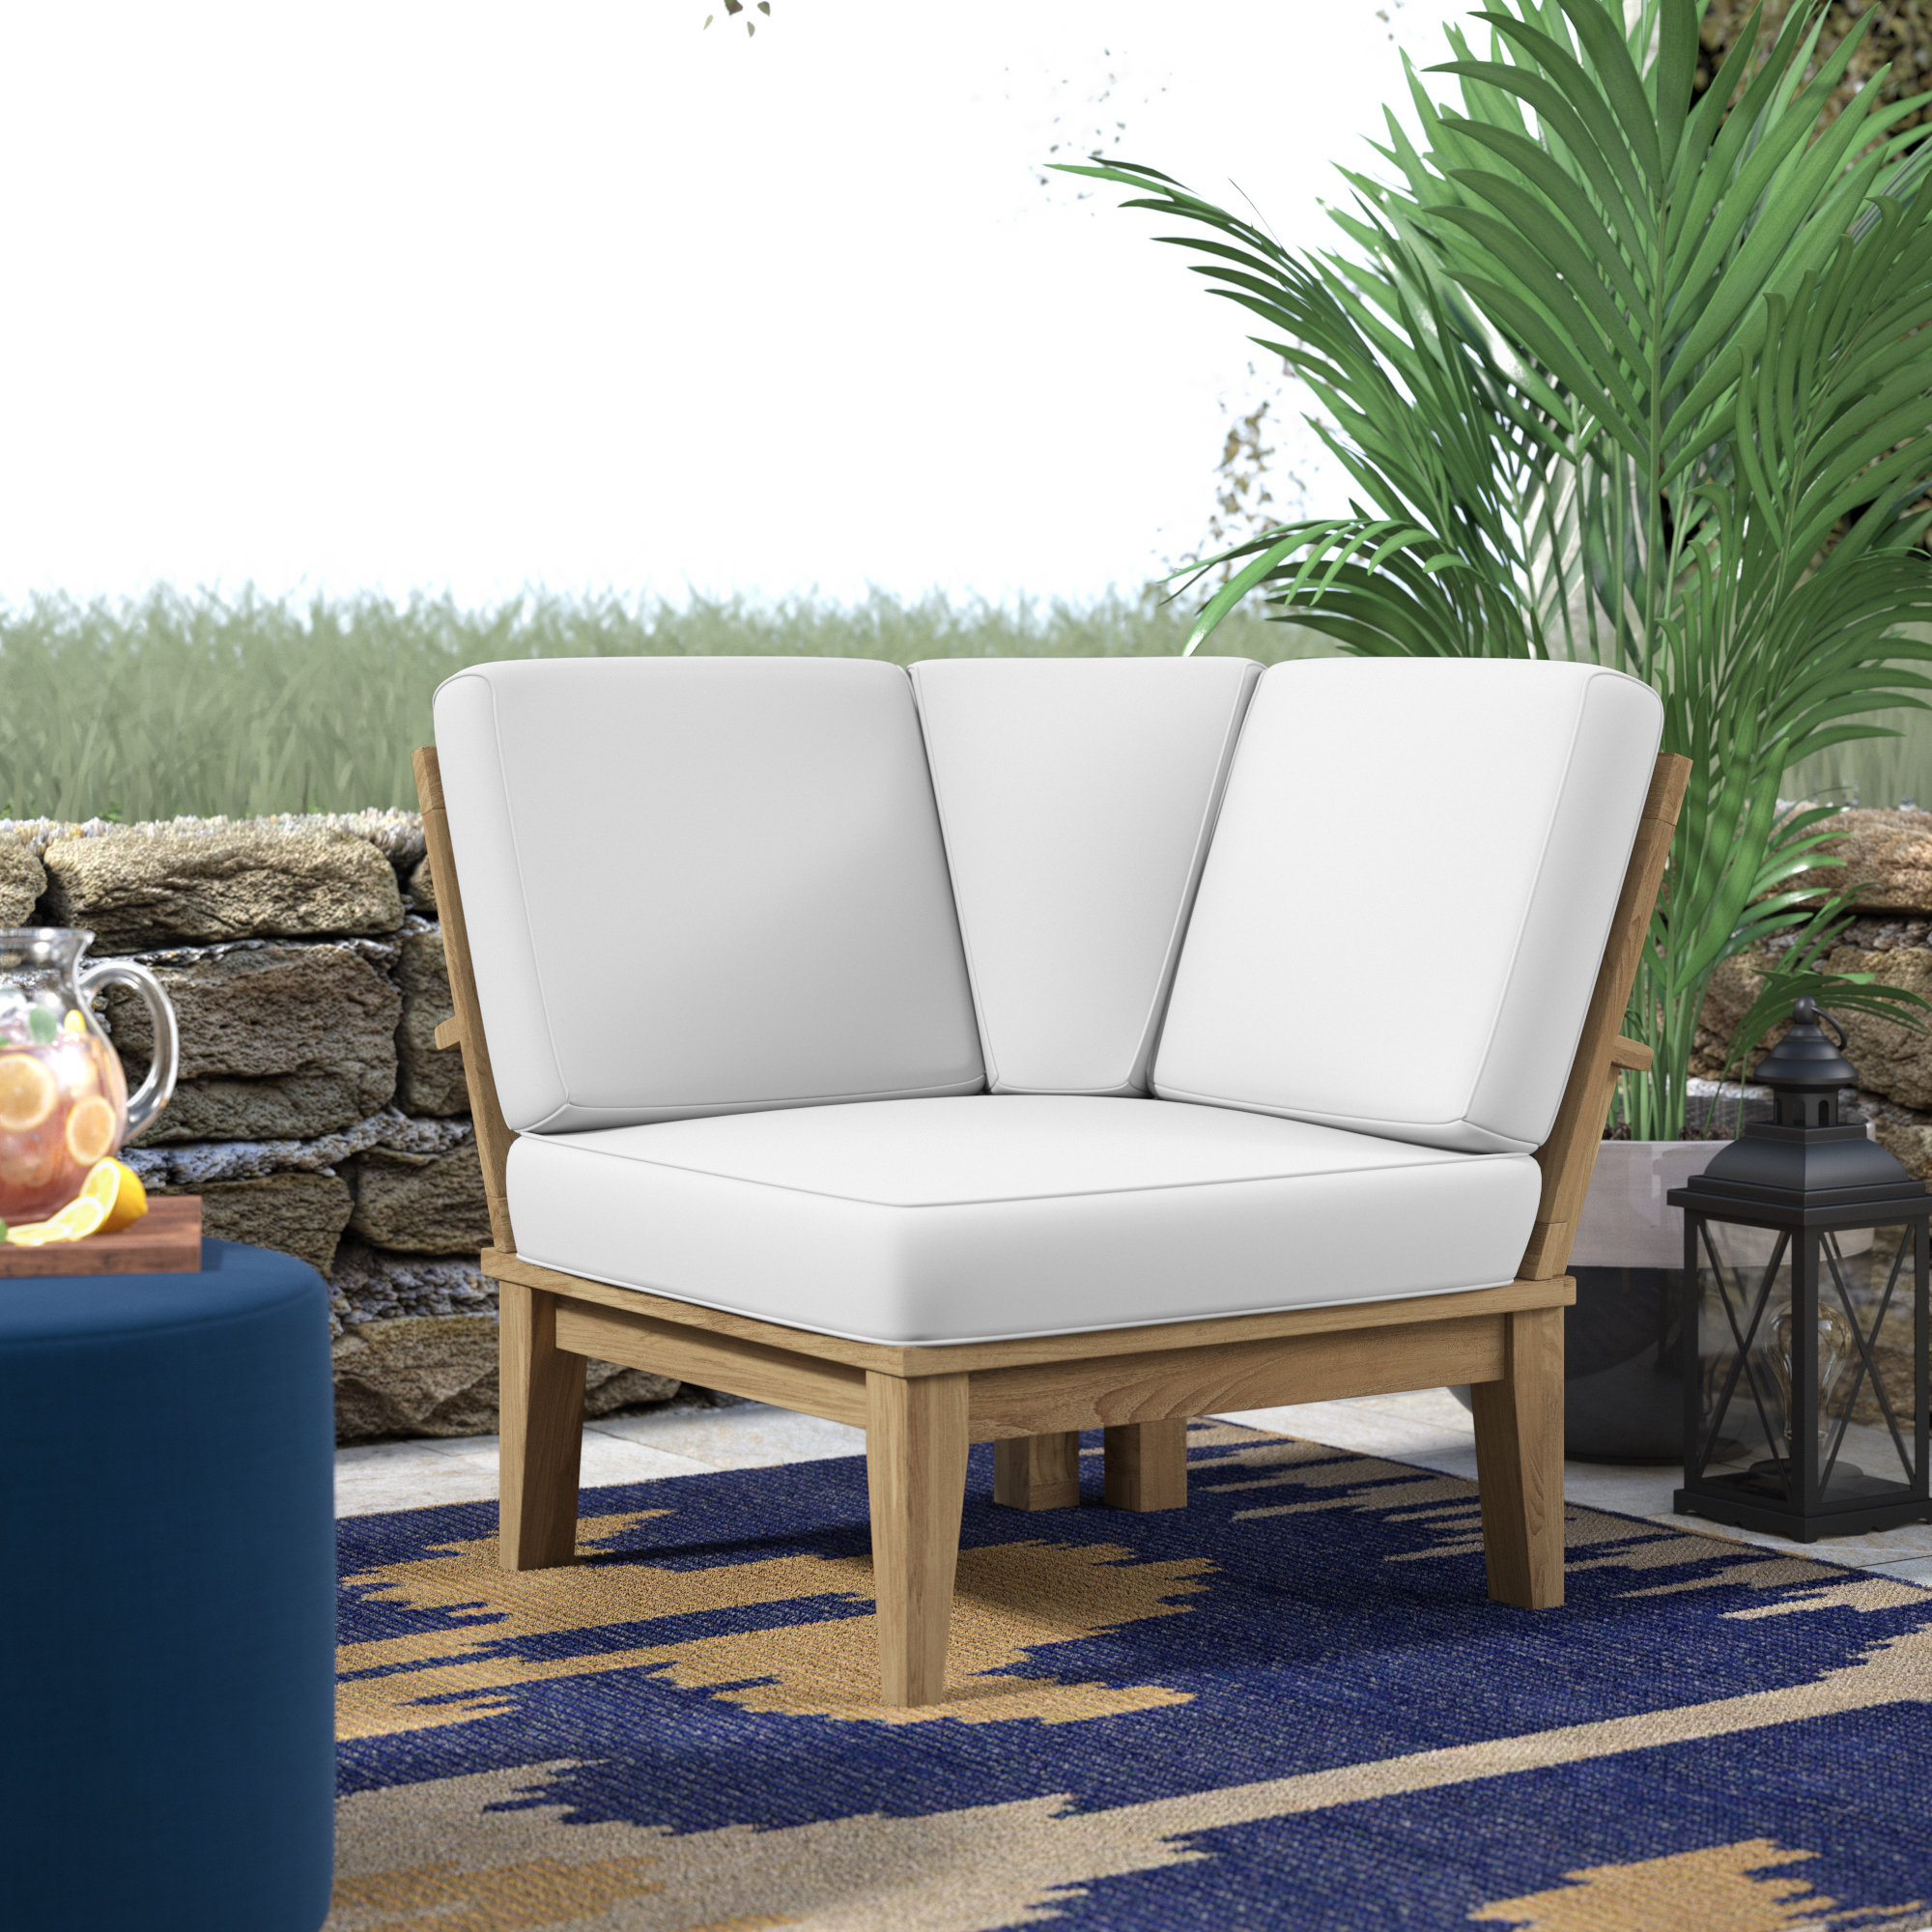 Wayfair With Regard To Elaina Teak Loveseats With Cushions (View 6 of 20)